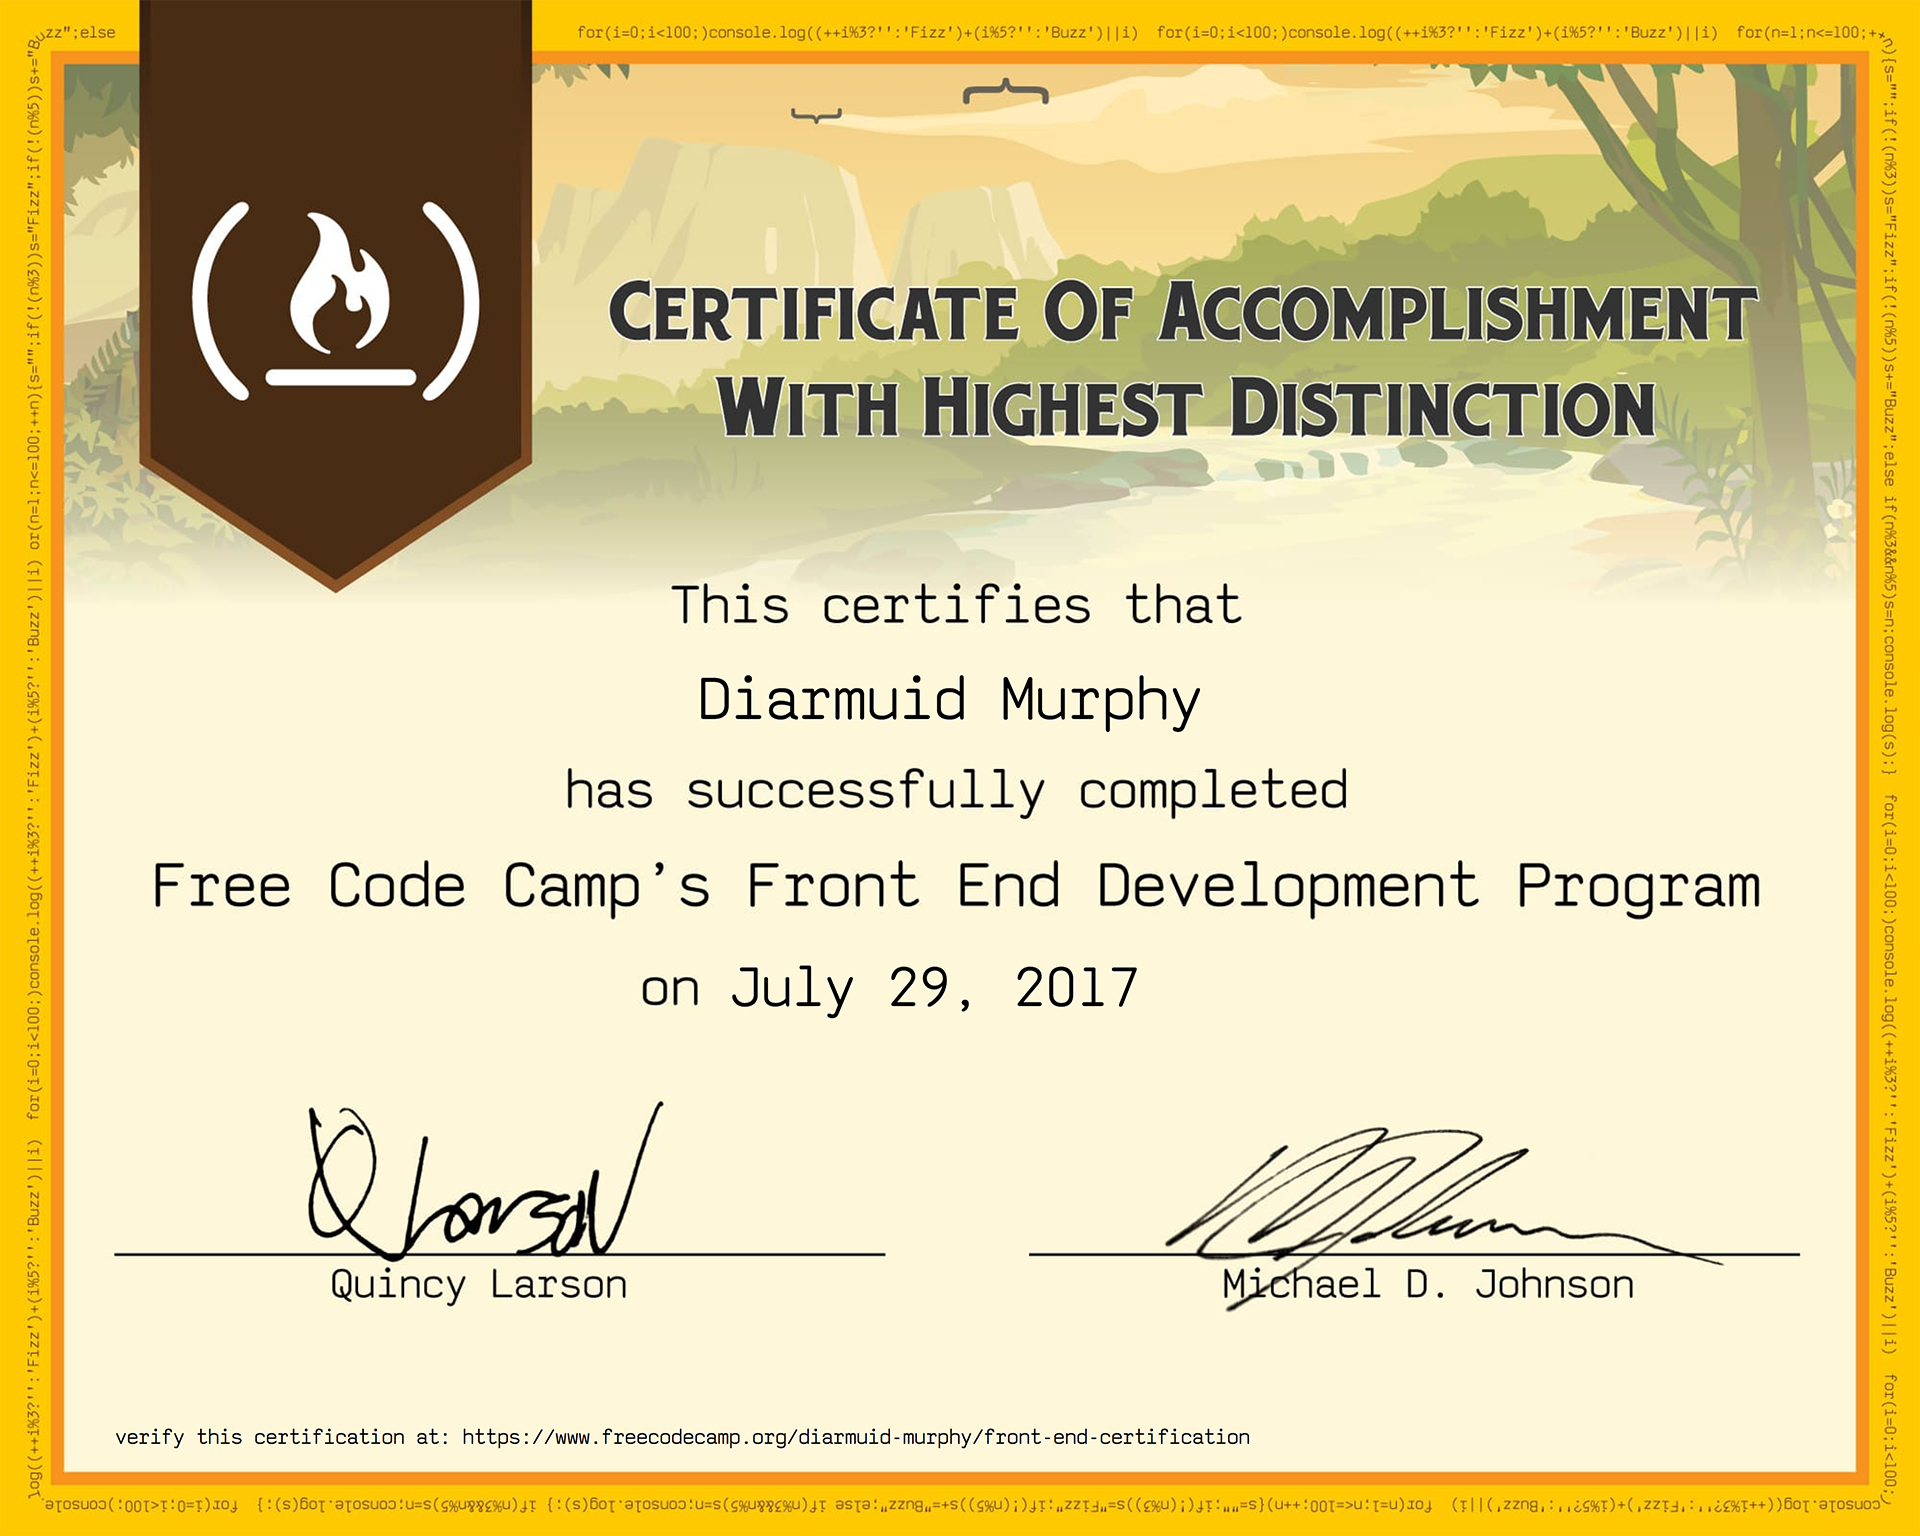 Freecodecamp Front End Development Certification Diarmuid Murphy